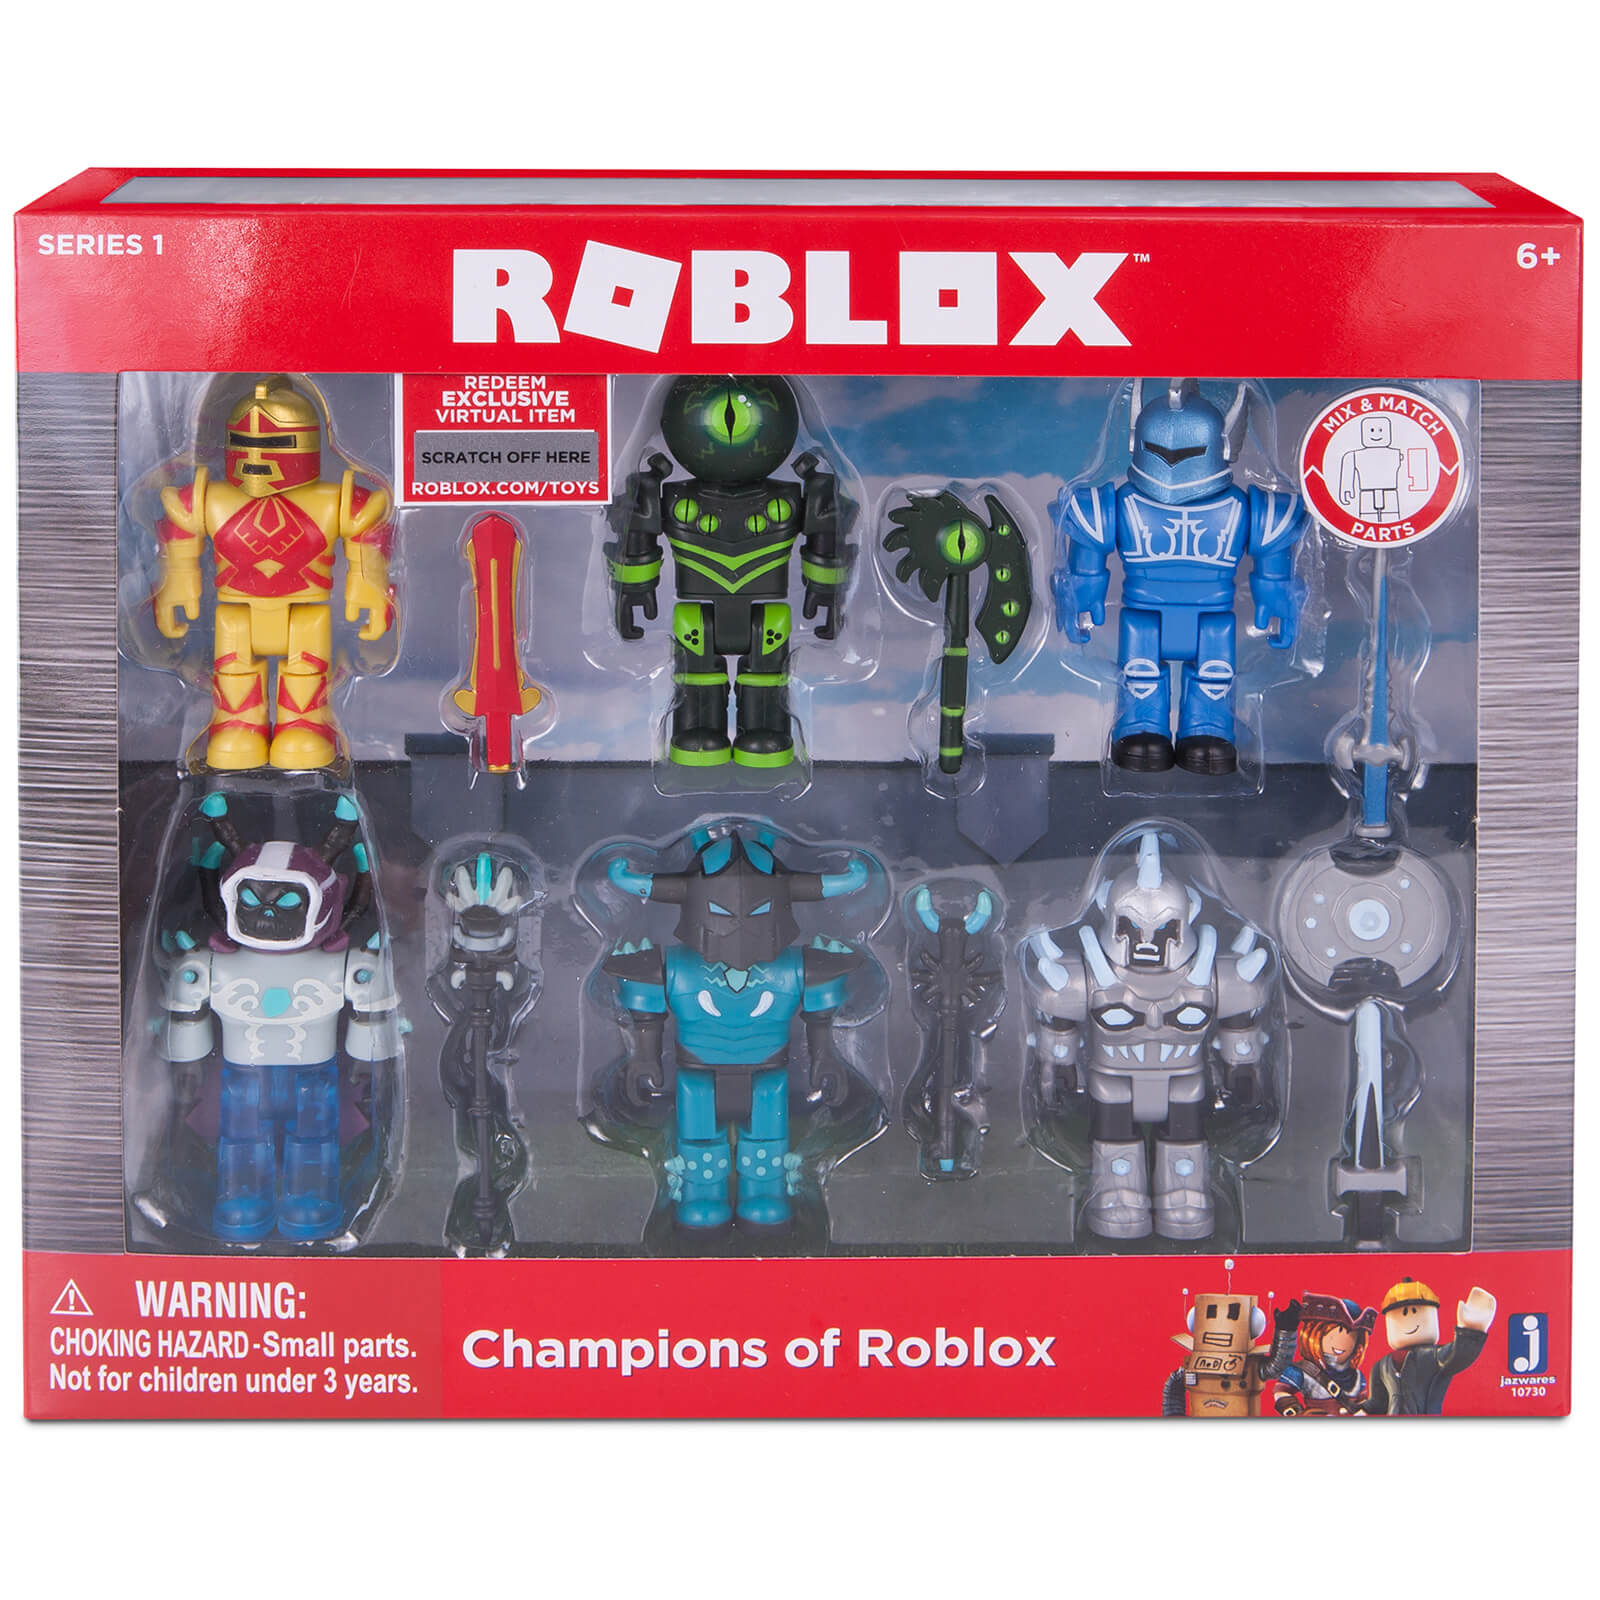 ROBLOX Champions of ROBLOX 6 Pack Figures